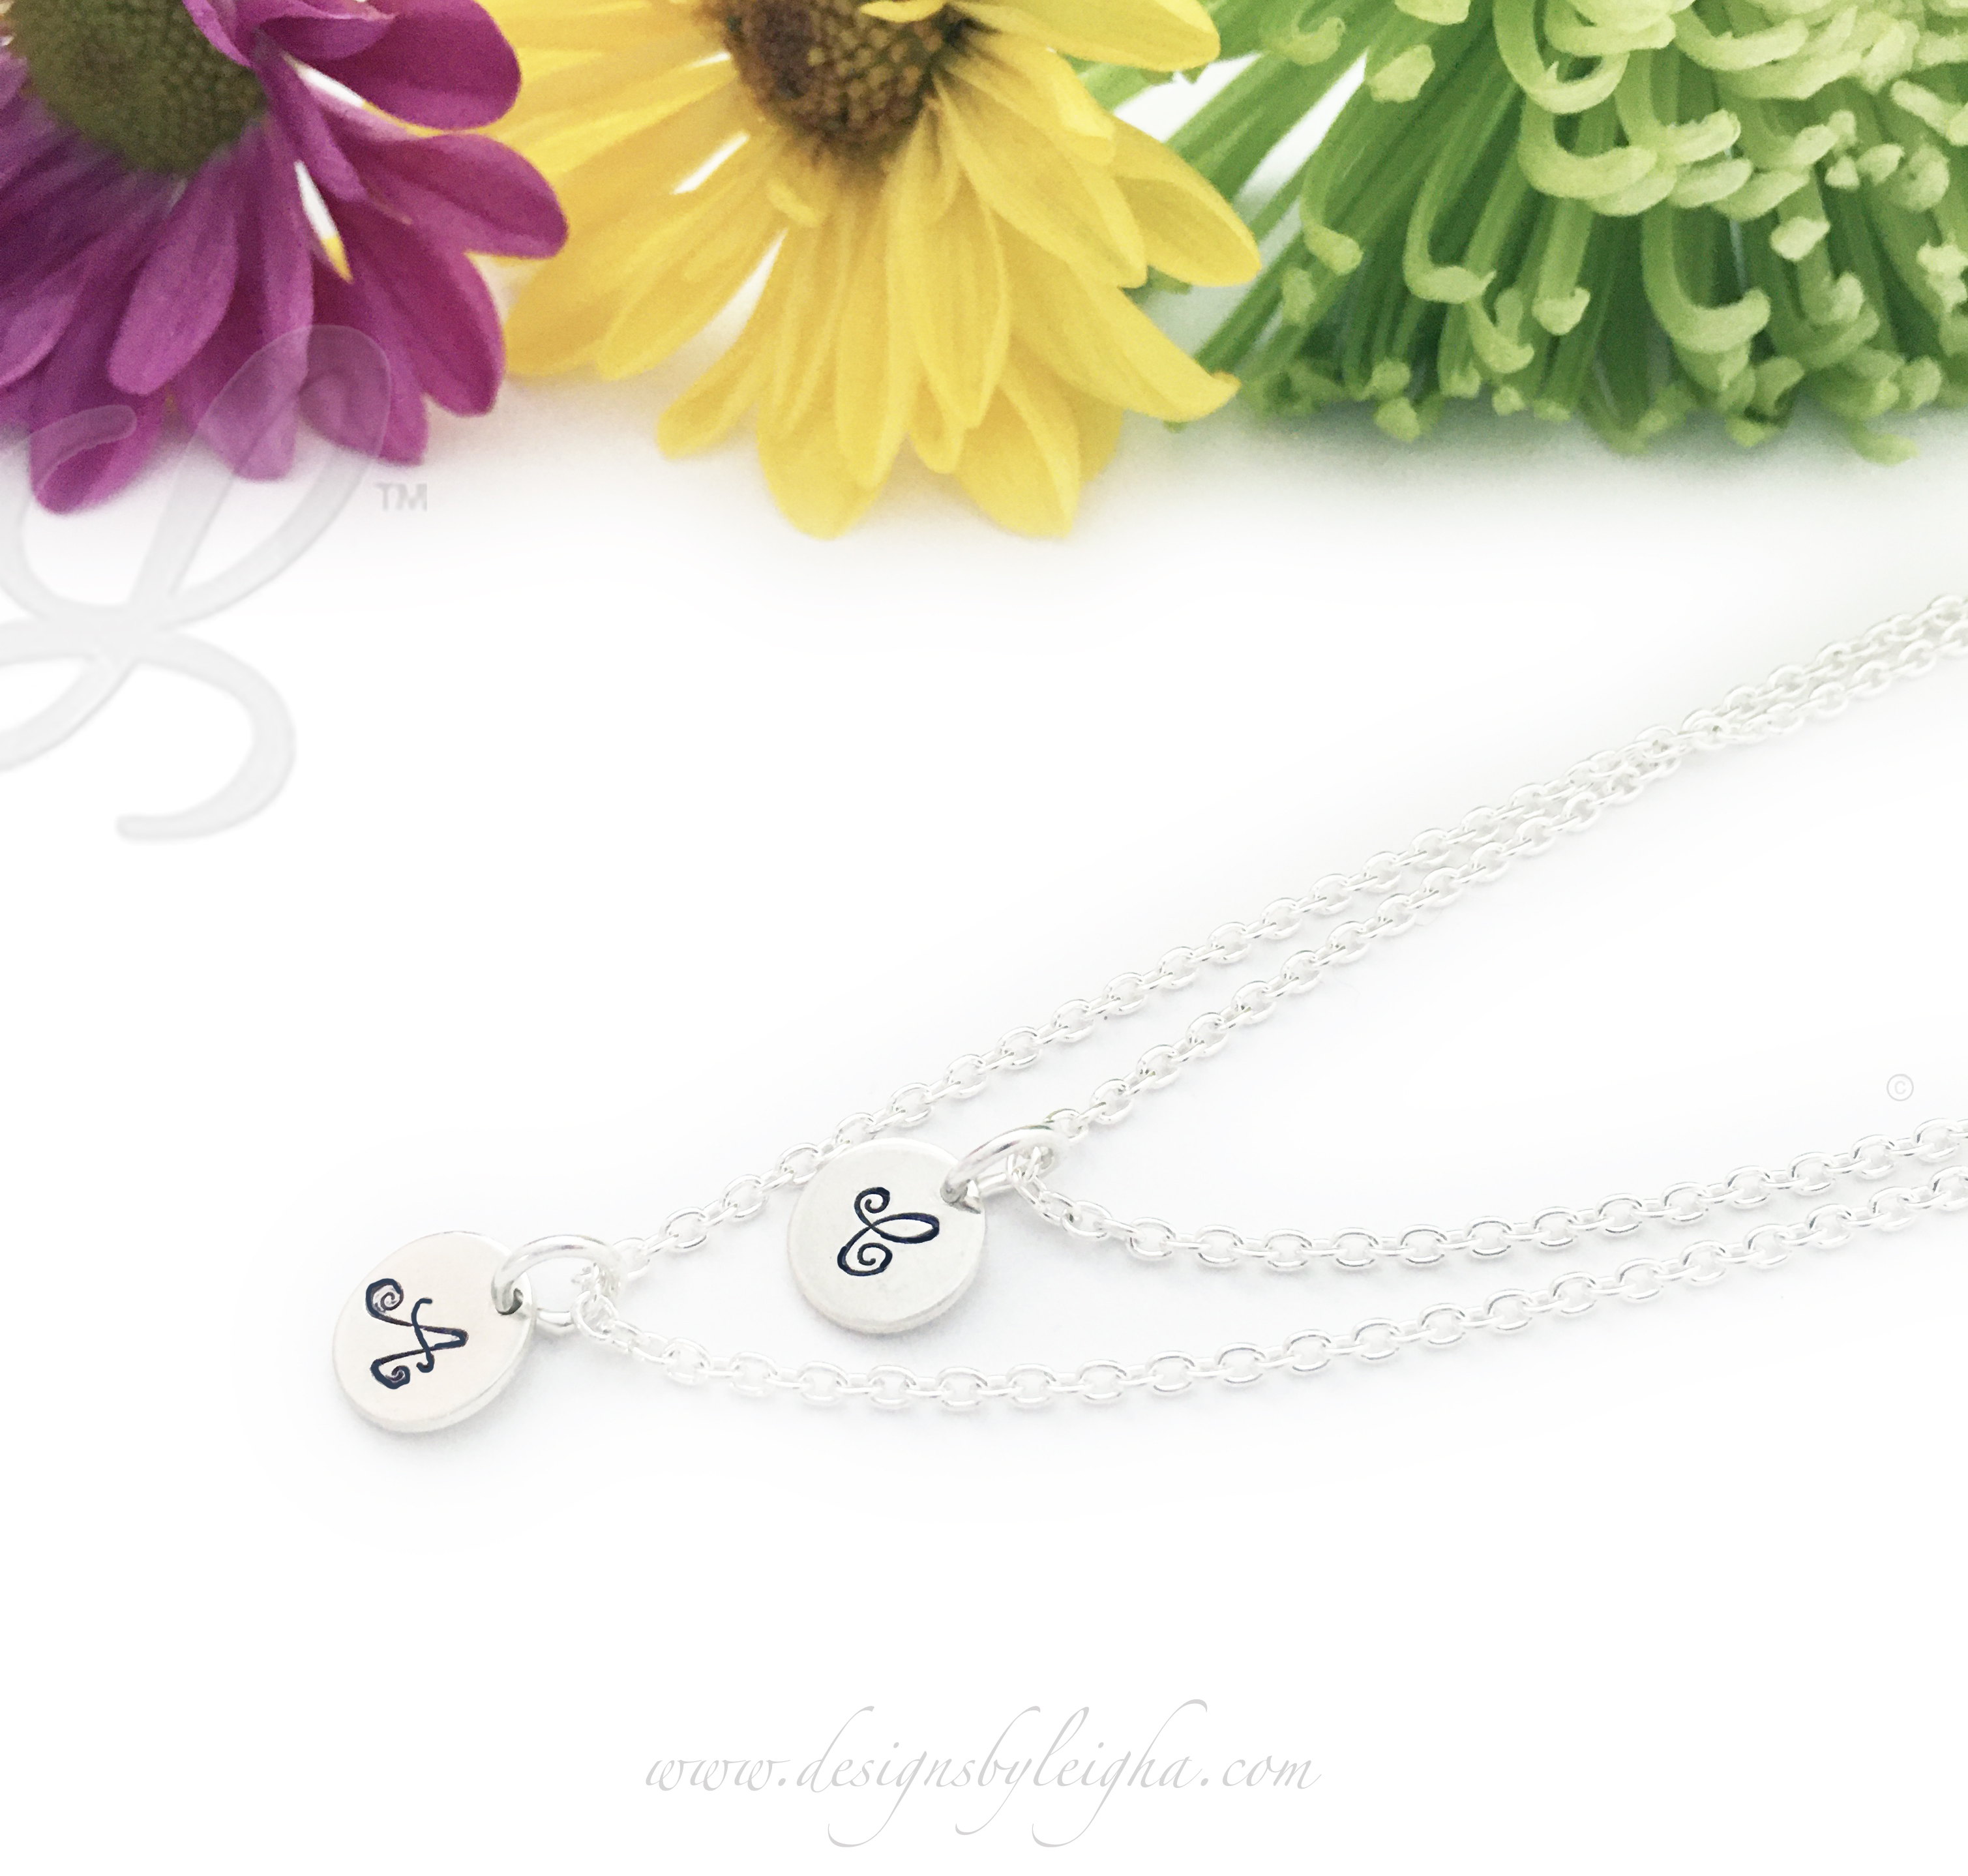 2 initial charm necklaces